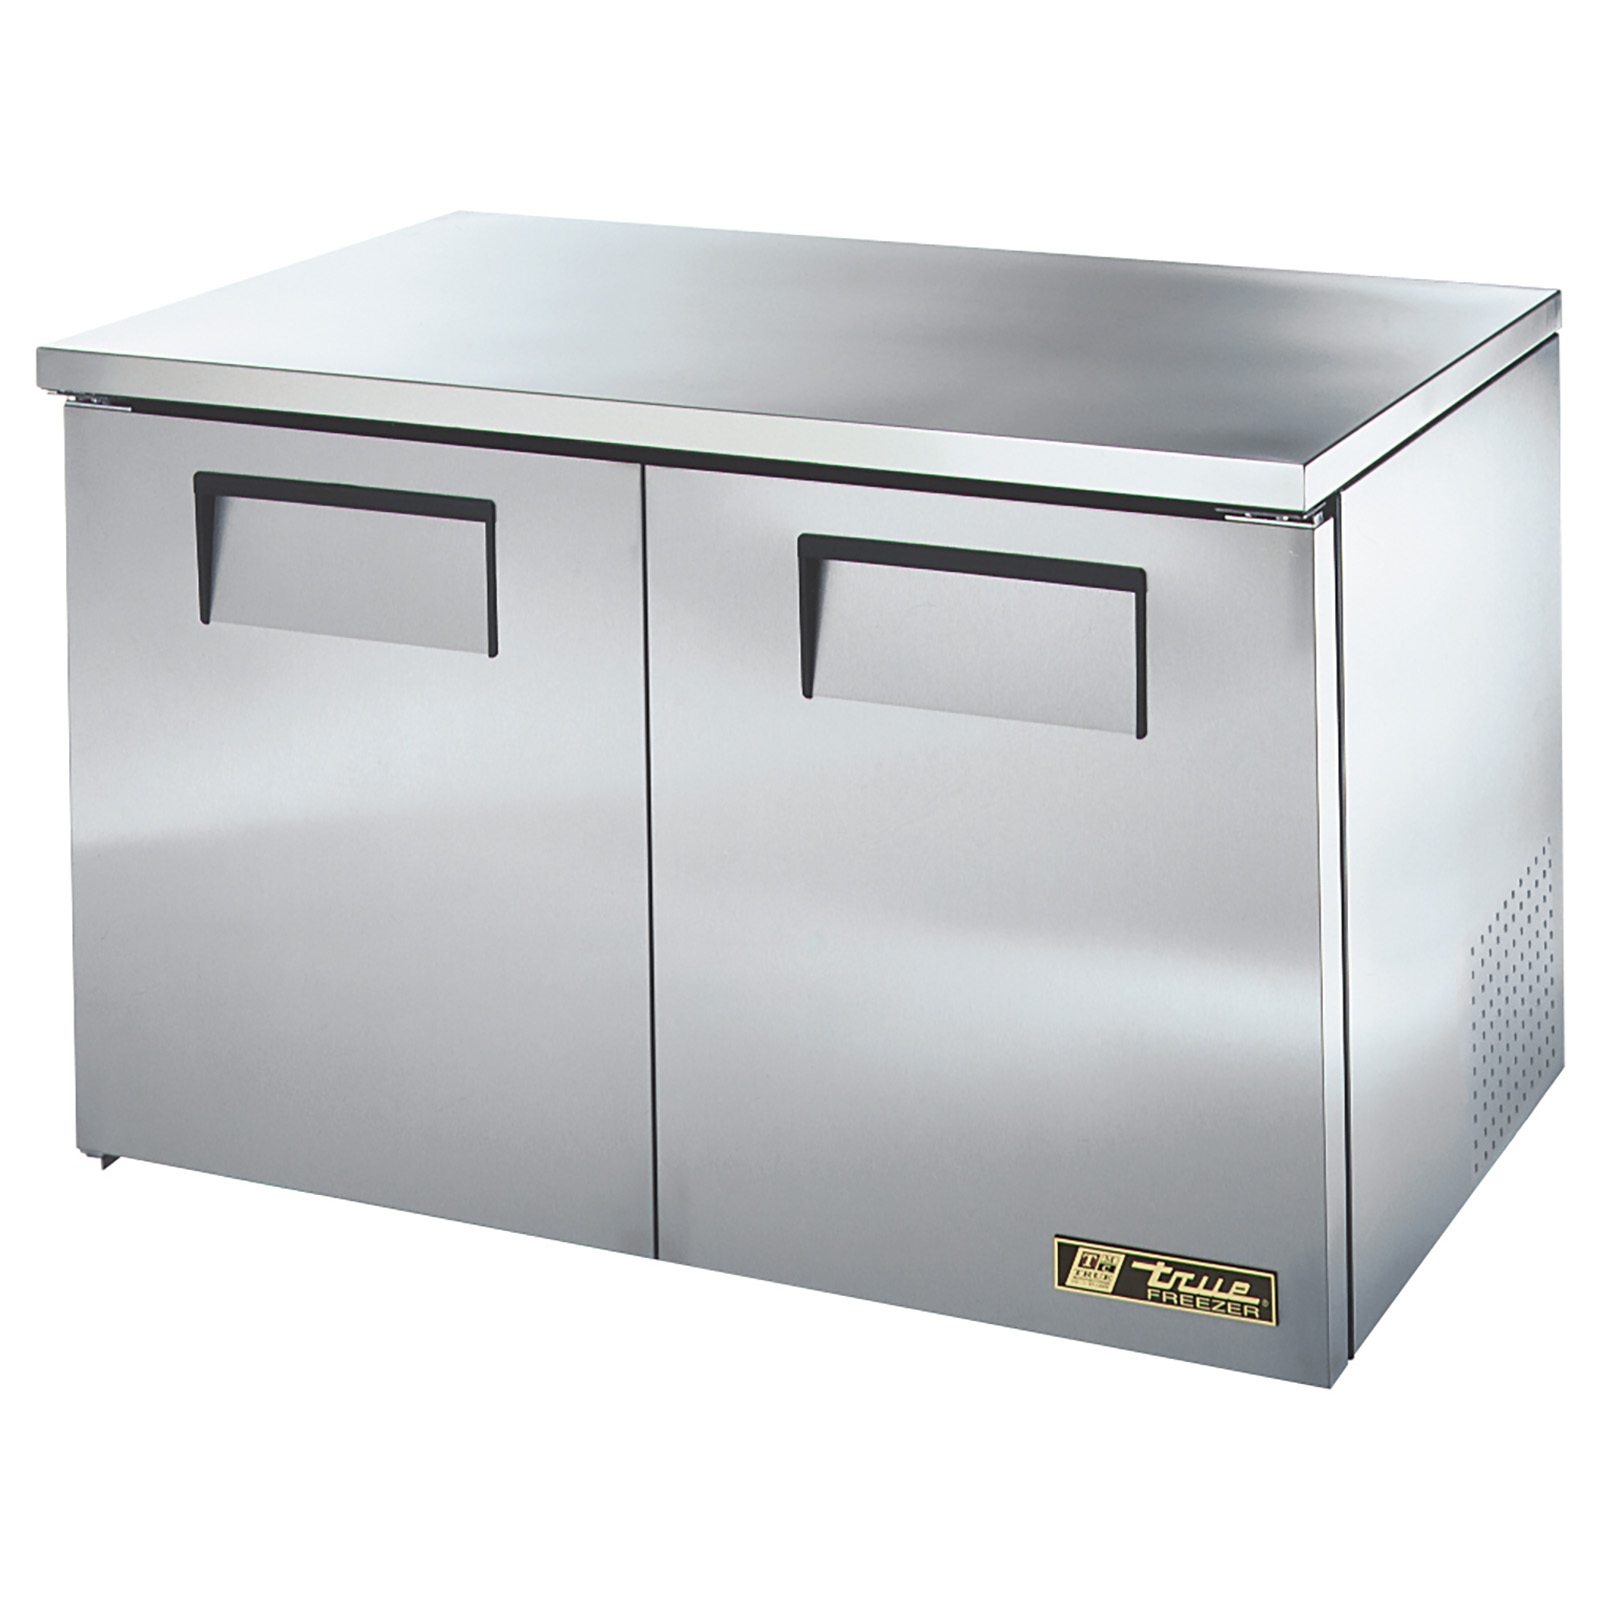 TUC-48F-LP-HC True - Low Profile Undercounter Freezer -10? F